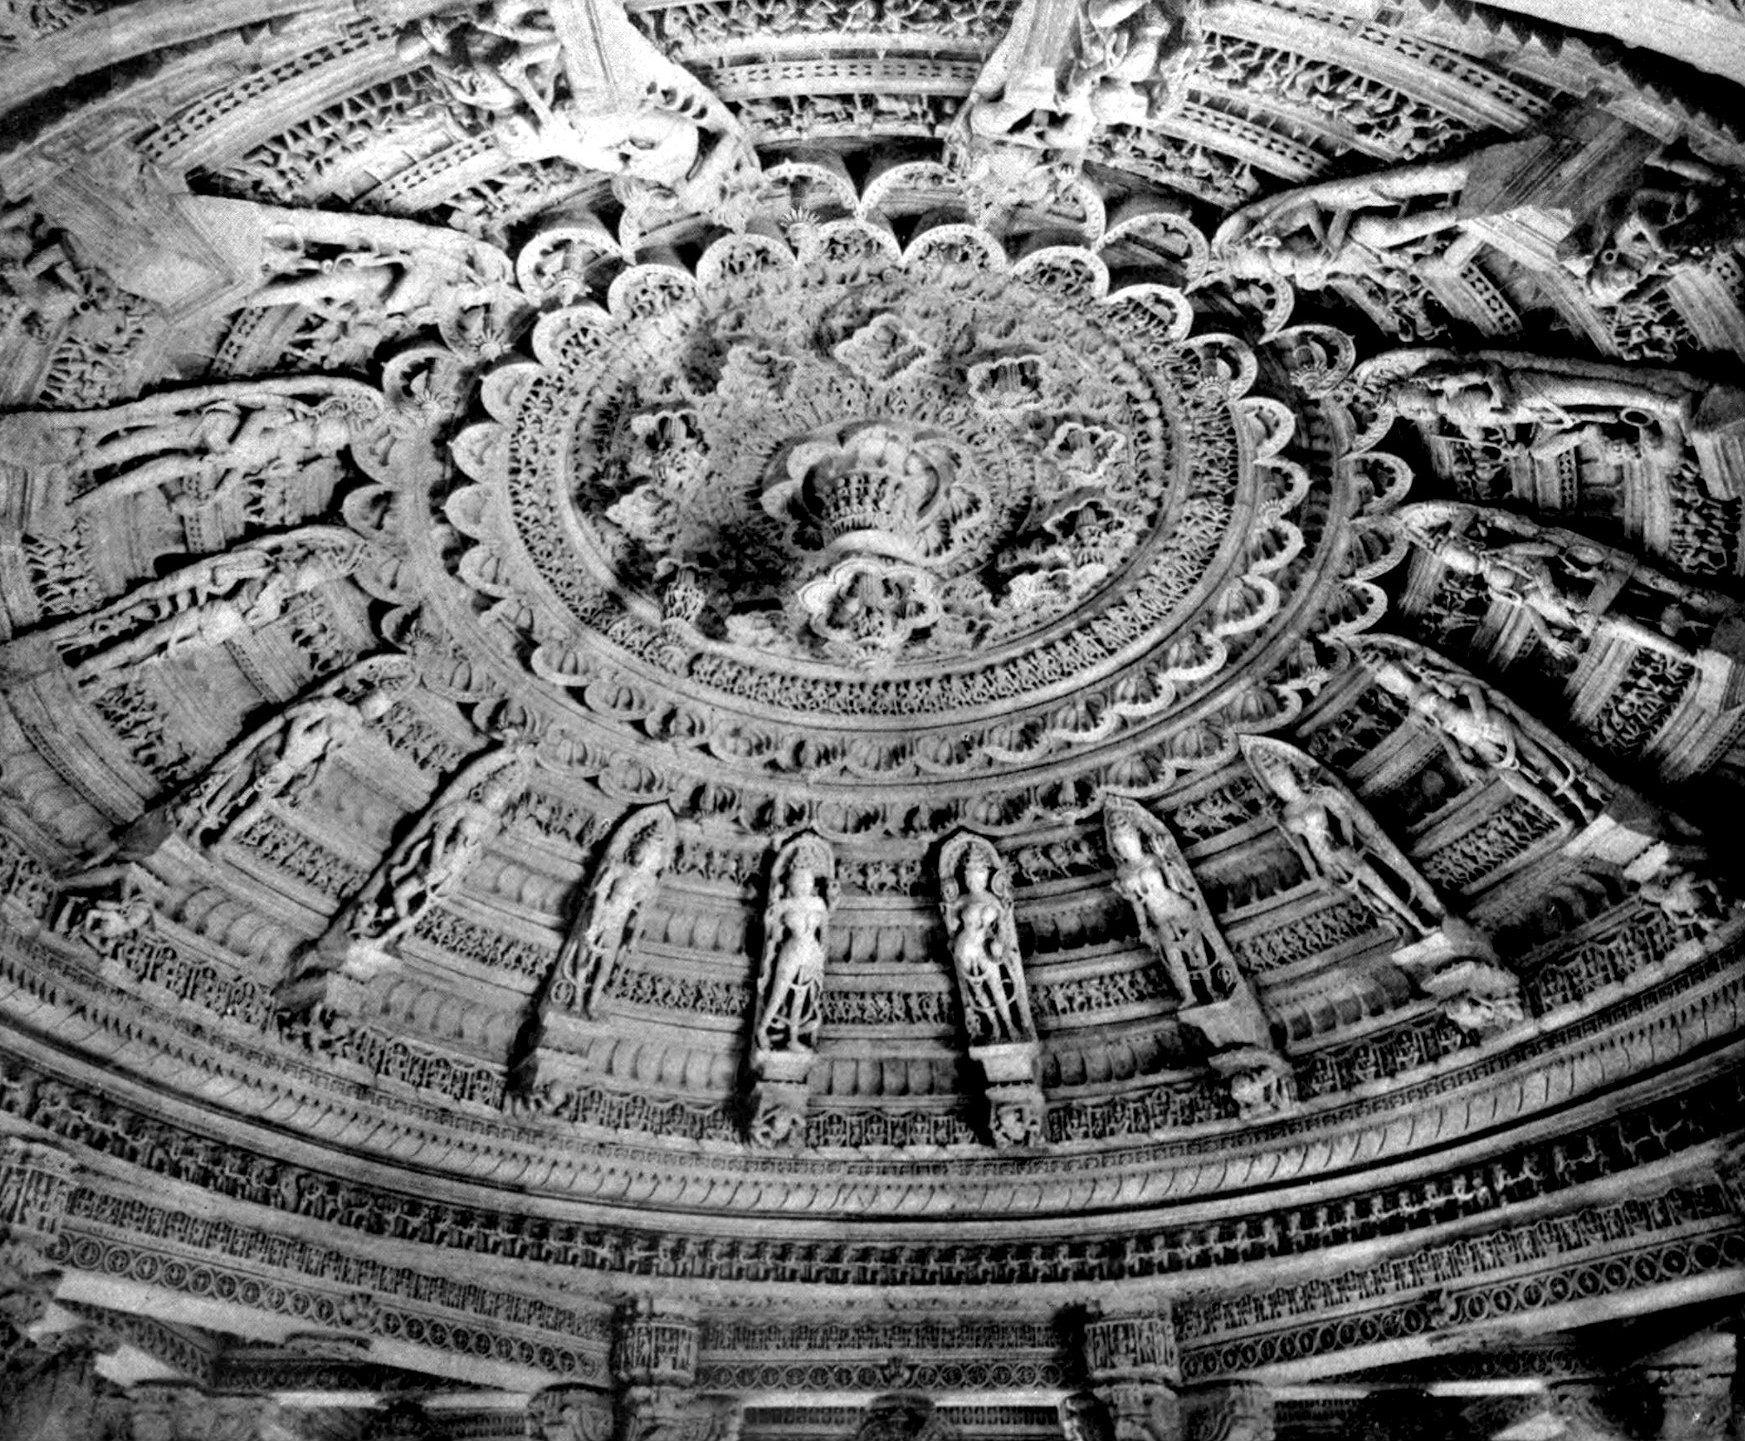 File:EB1911 Indian Architecture - Roof of Dome of Vimala's Temple on